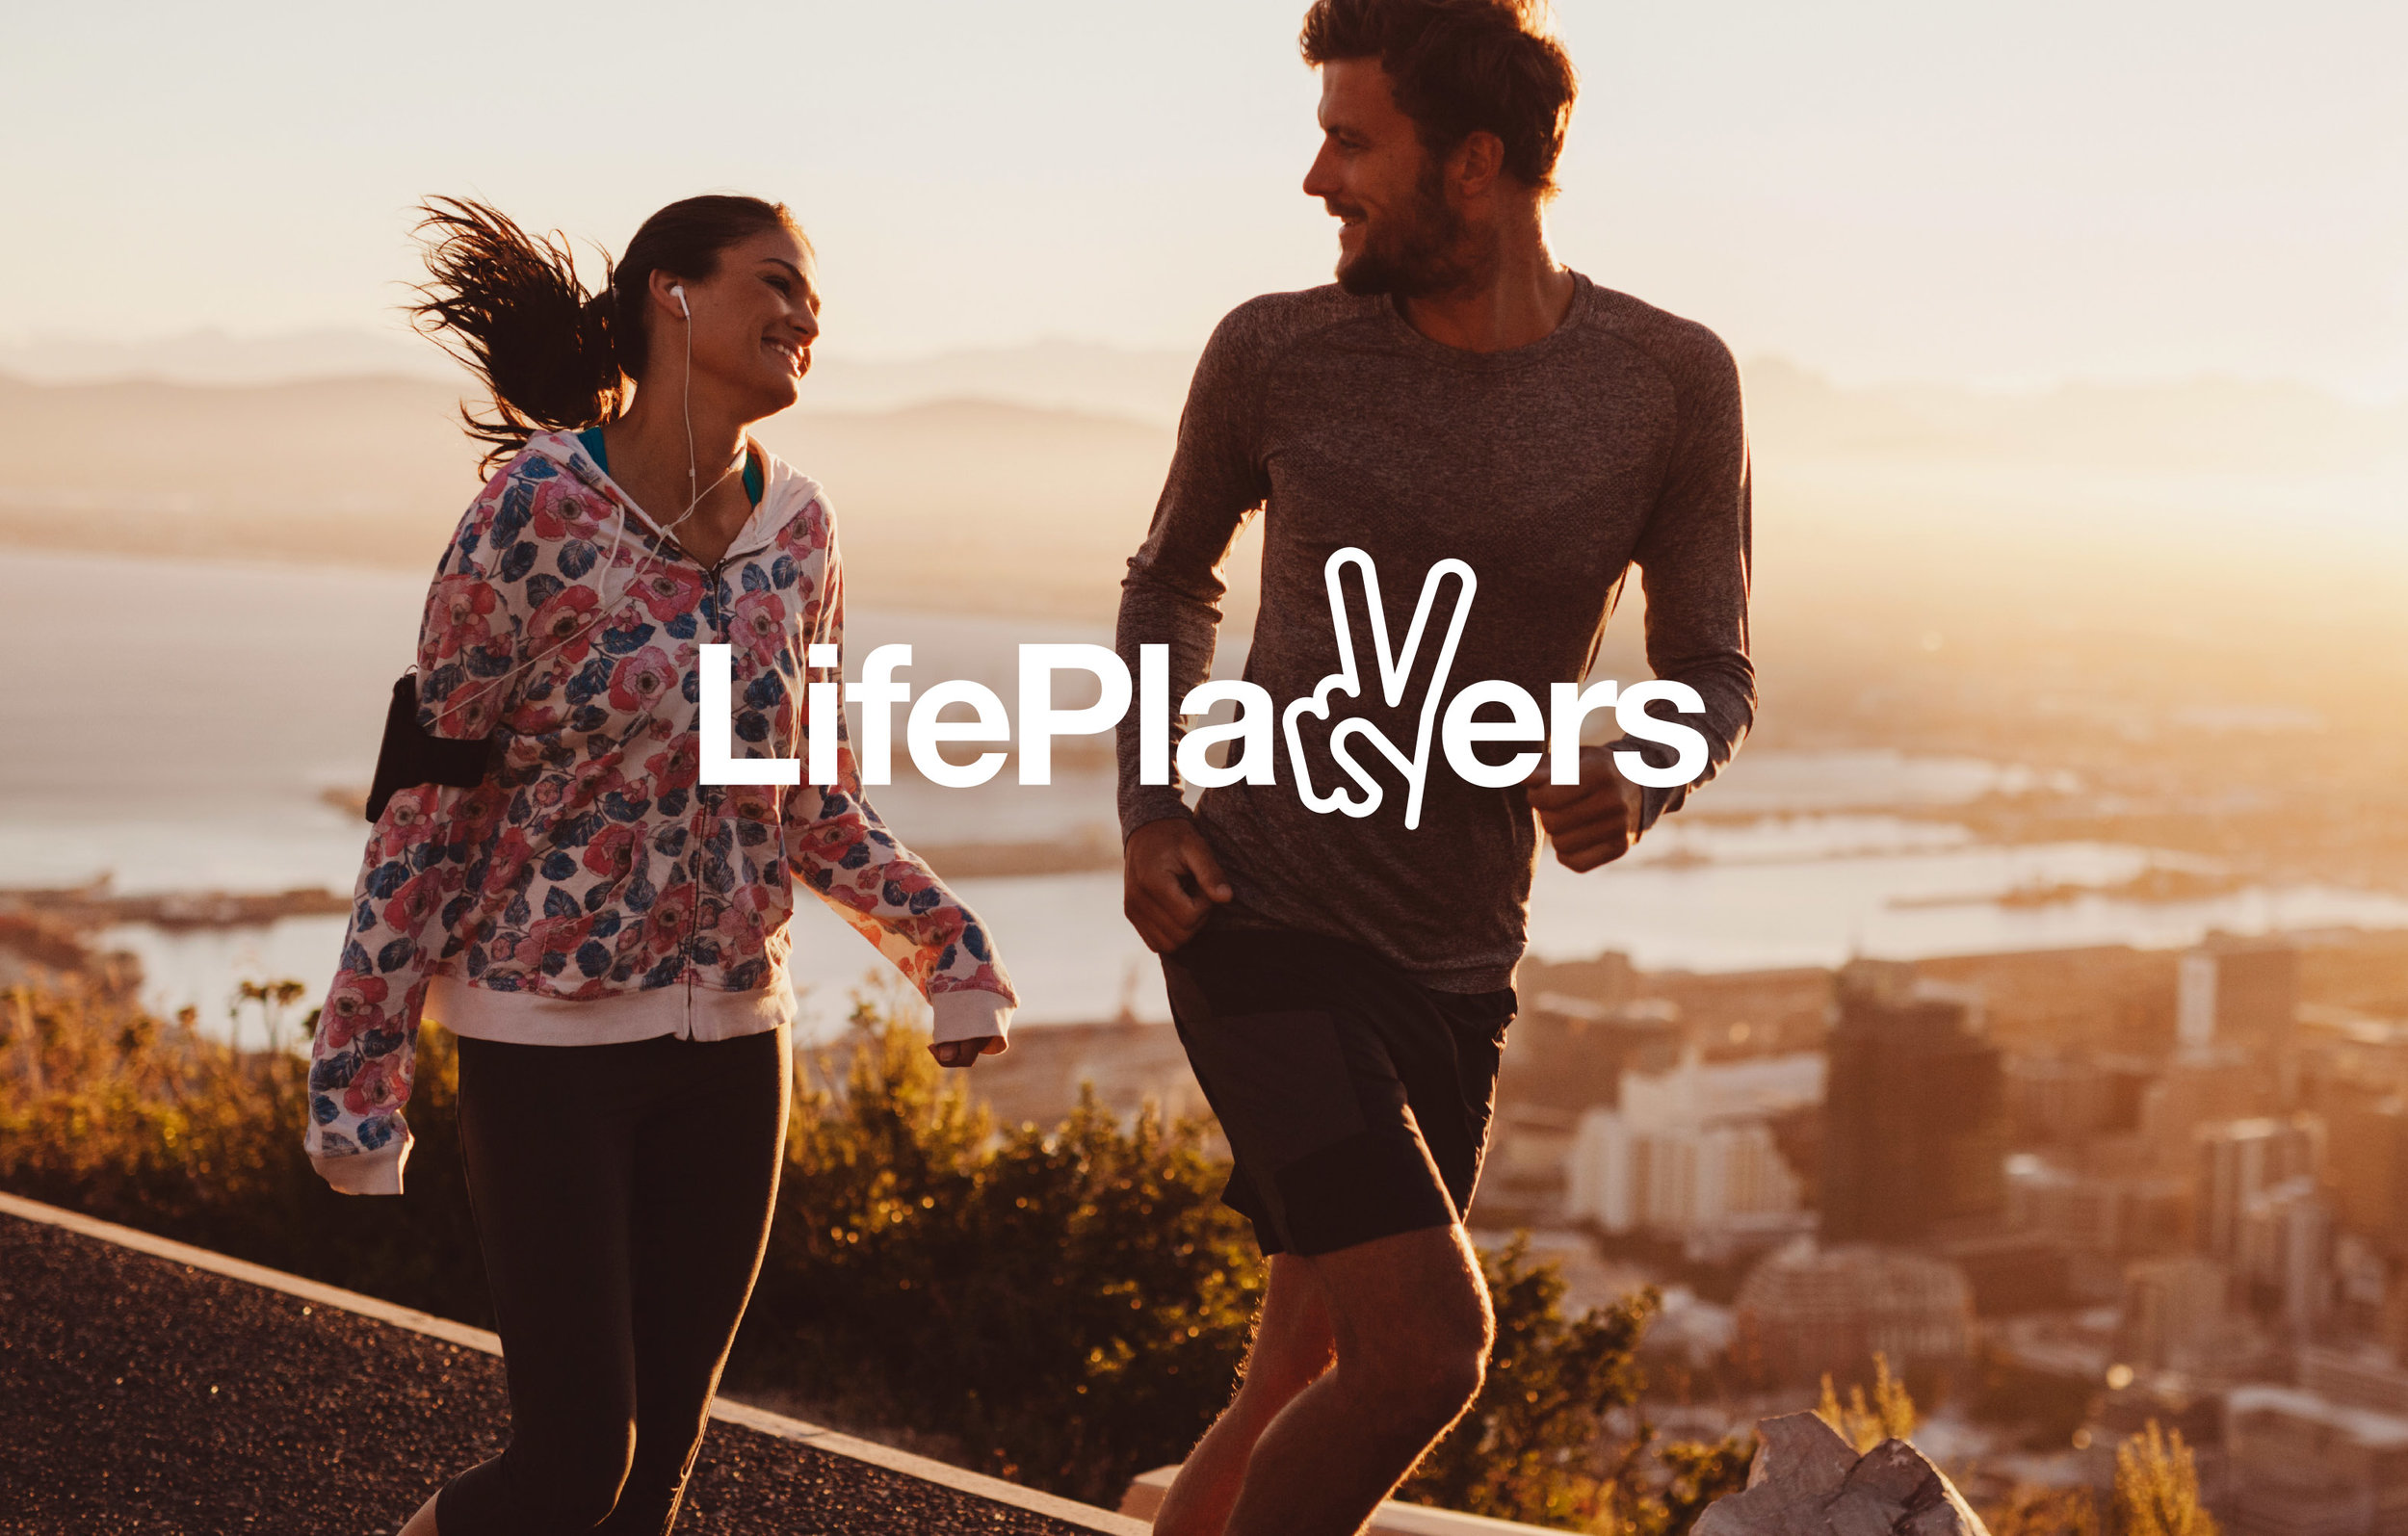 LifePlayers - brand identity, strategic communcation, digital, sales material.